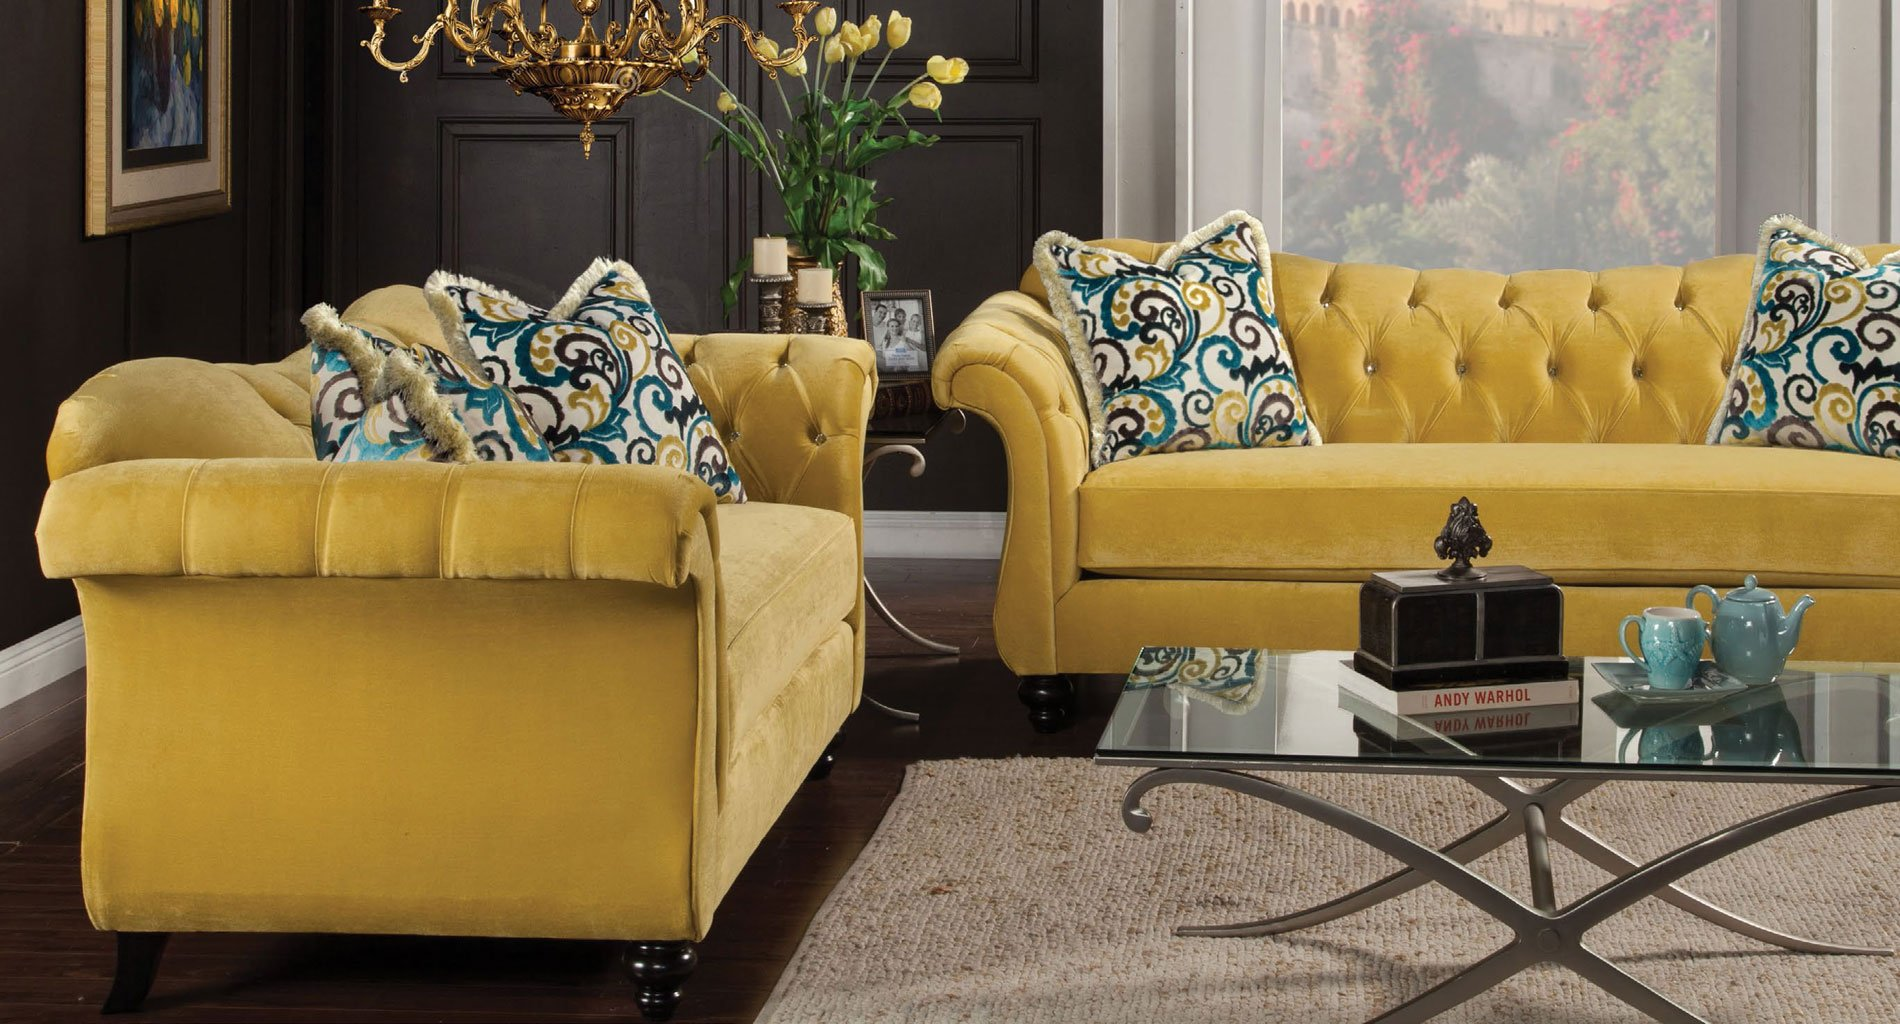 Groovy Antoinette Ii Living Room Set Royal Yellow Interior Design Ideas Tzicisoteloinfo